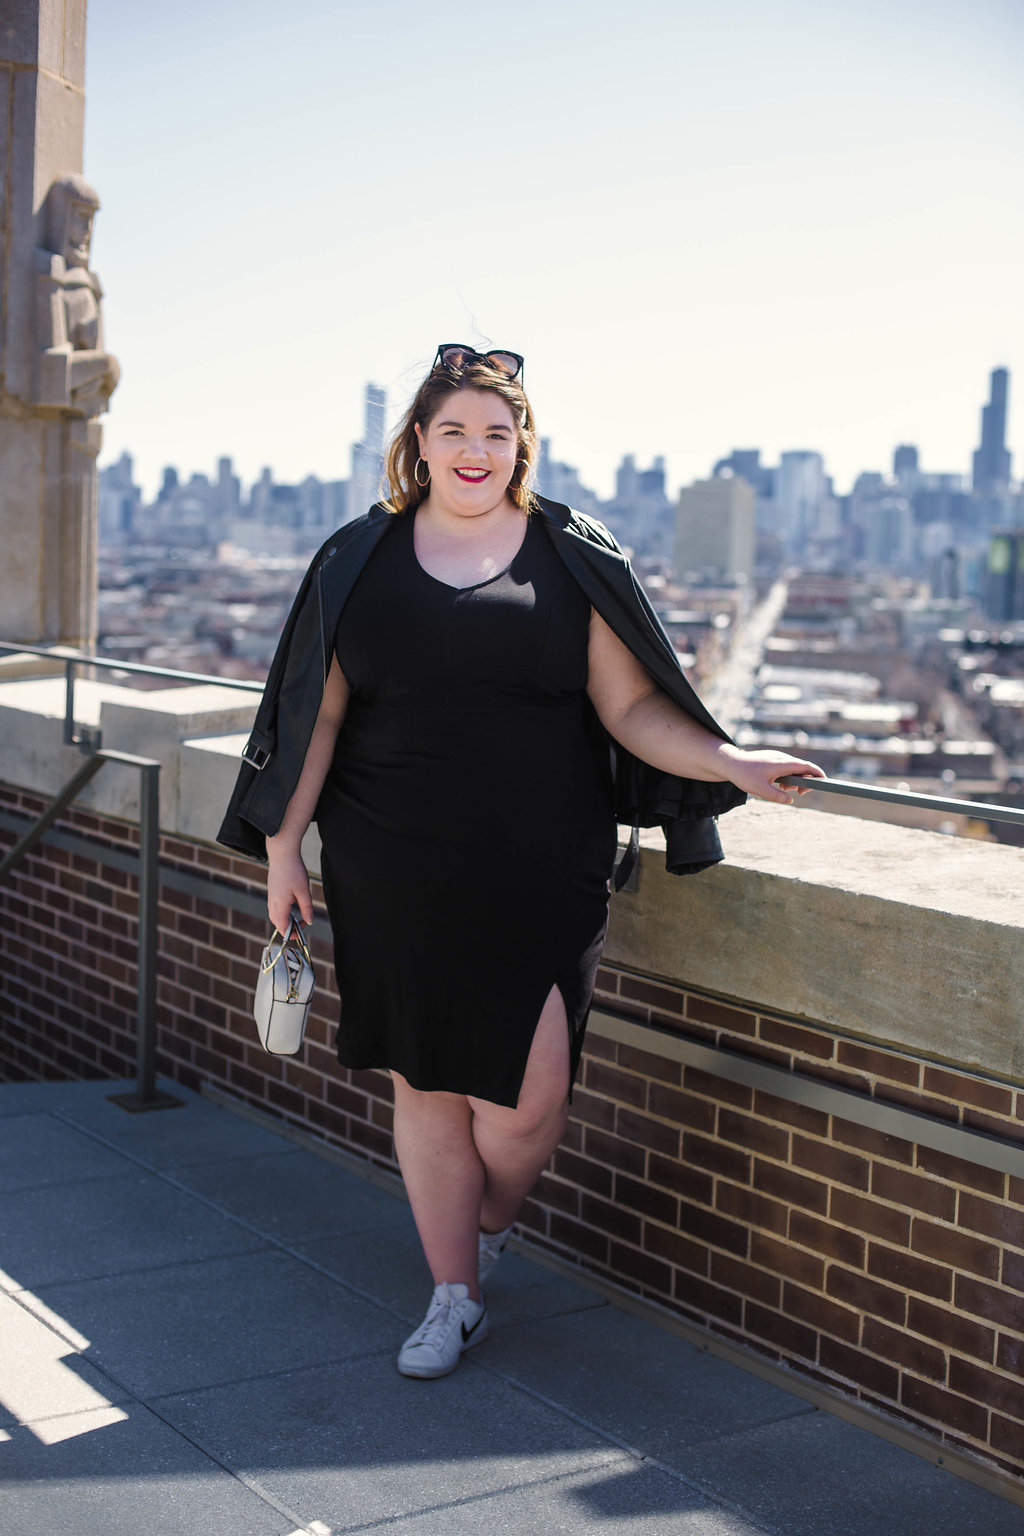 Back to Black: Plus-Size LBDs - The Plus-Sized Prep